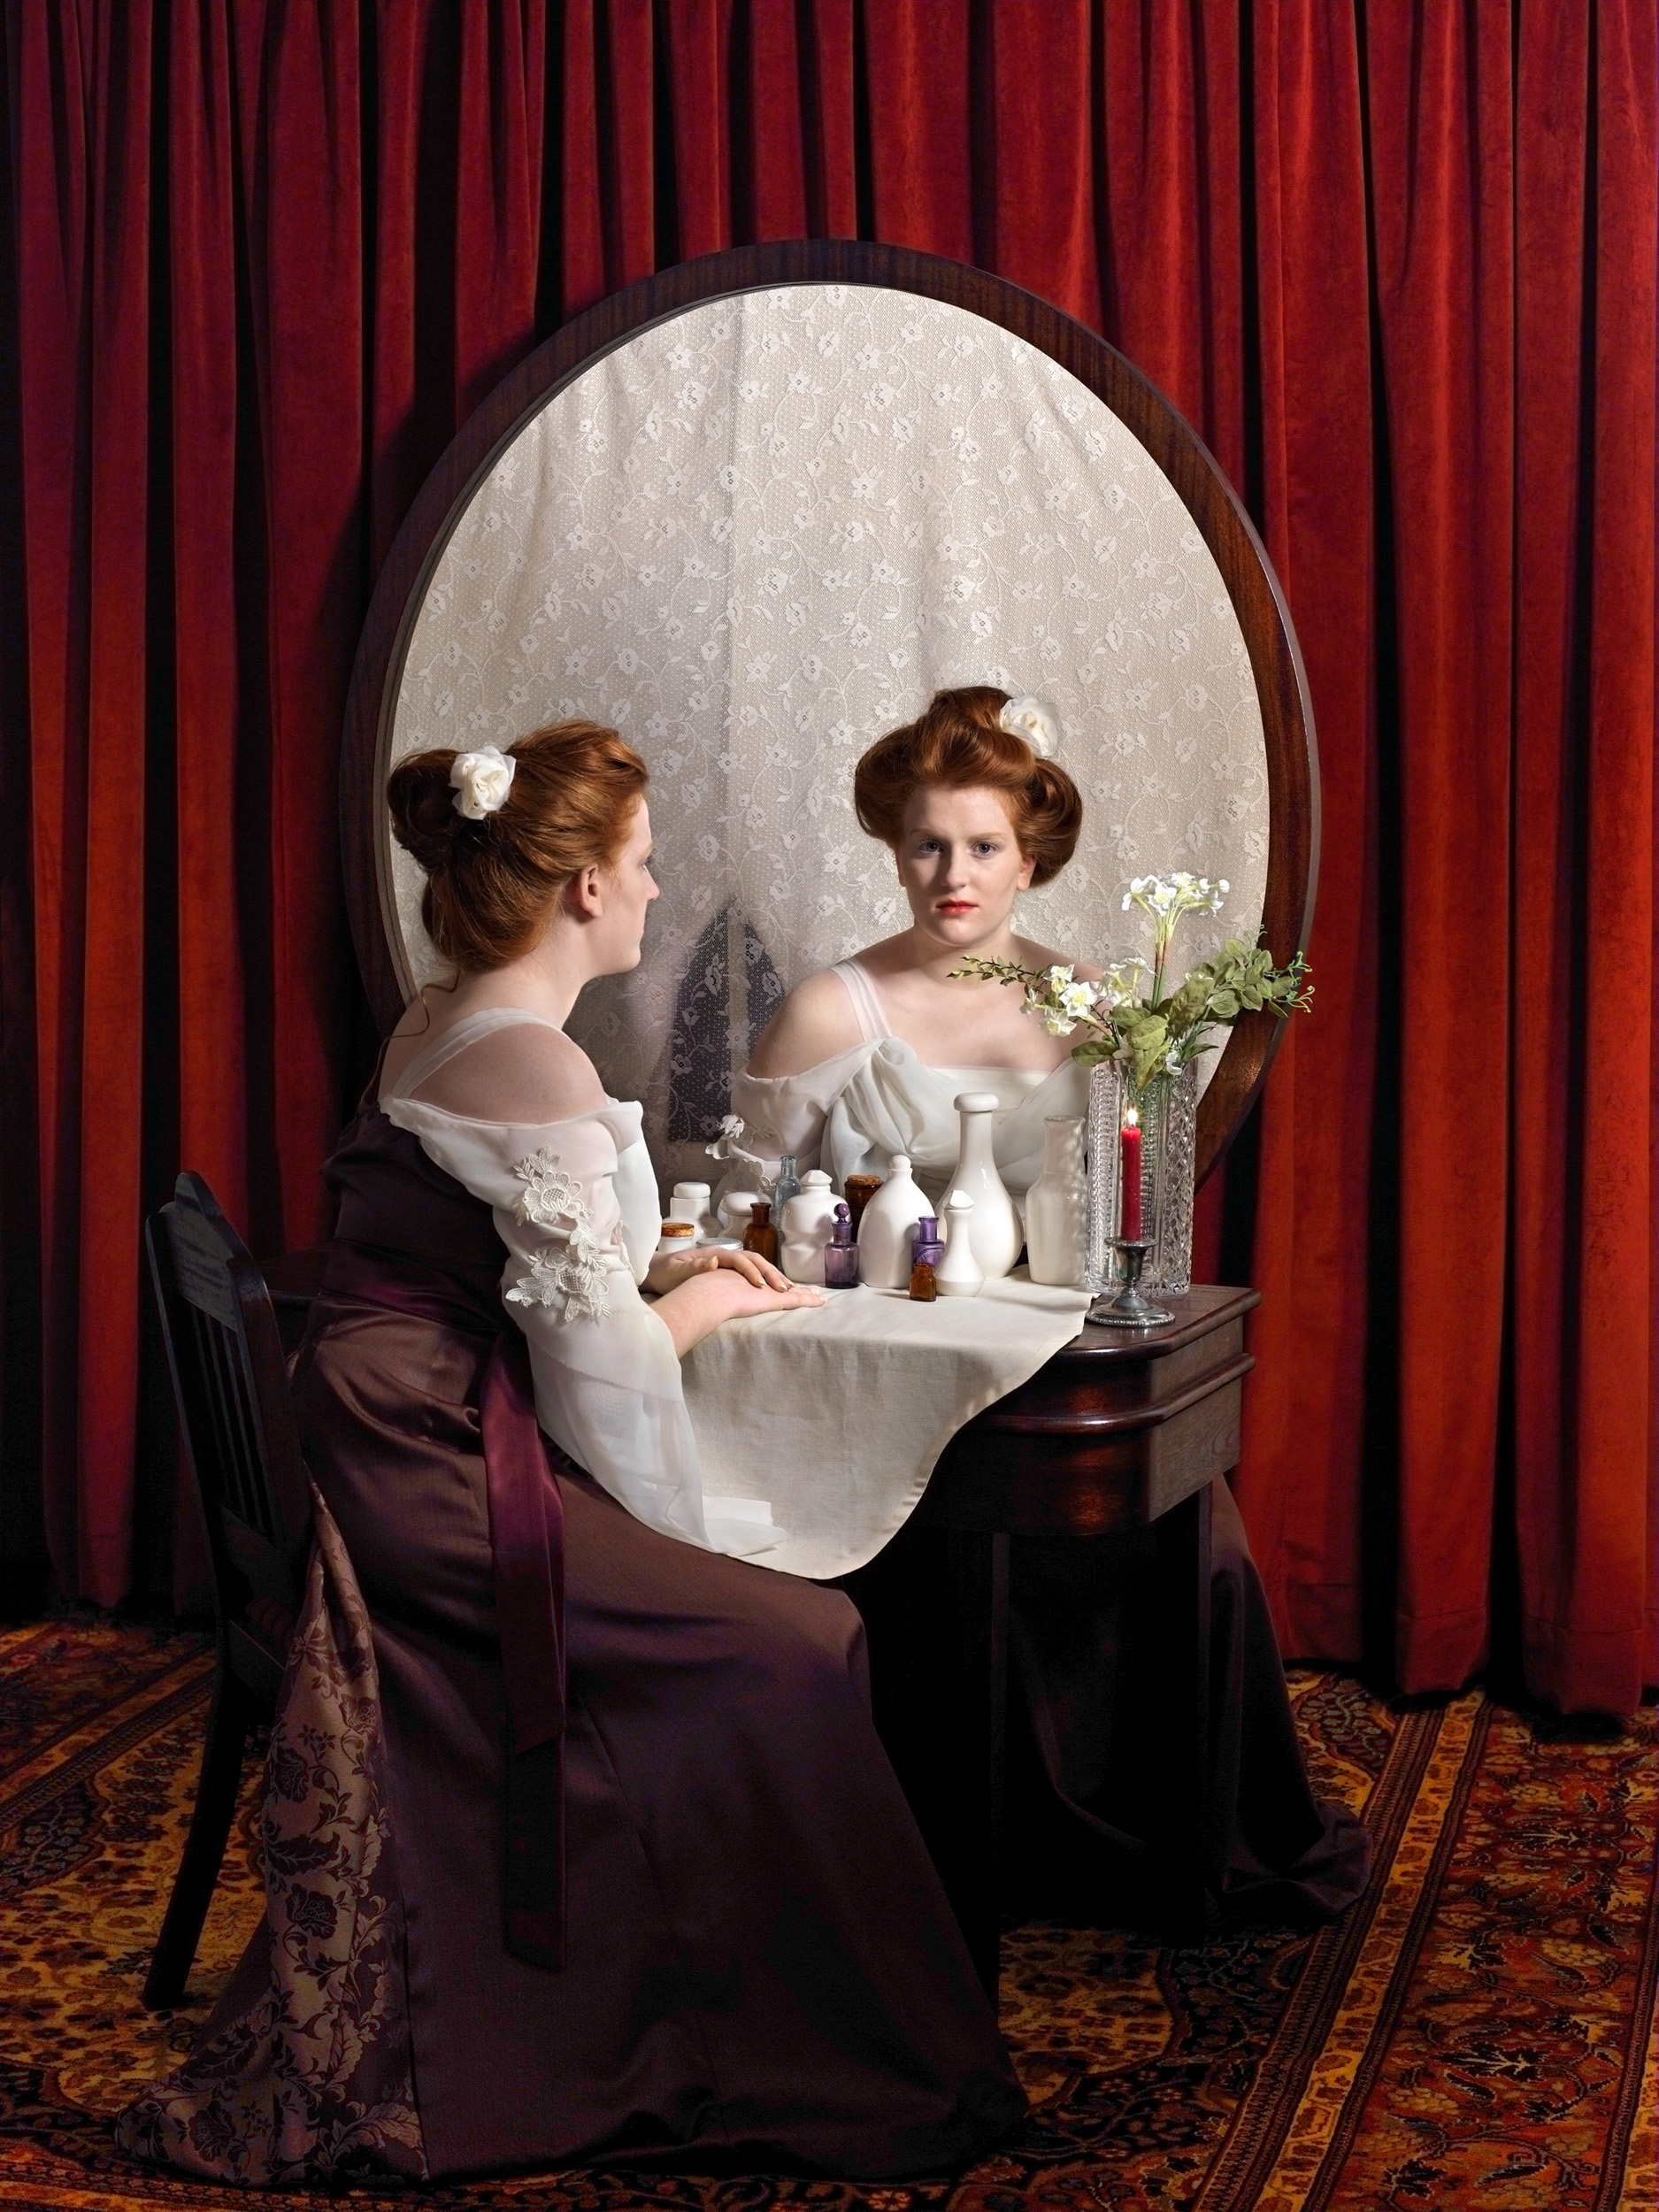 All Is Vanity  2009, colour photograph 101 x 76 cm / 40 x 30 in. Edition of 7